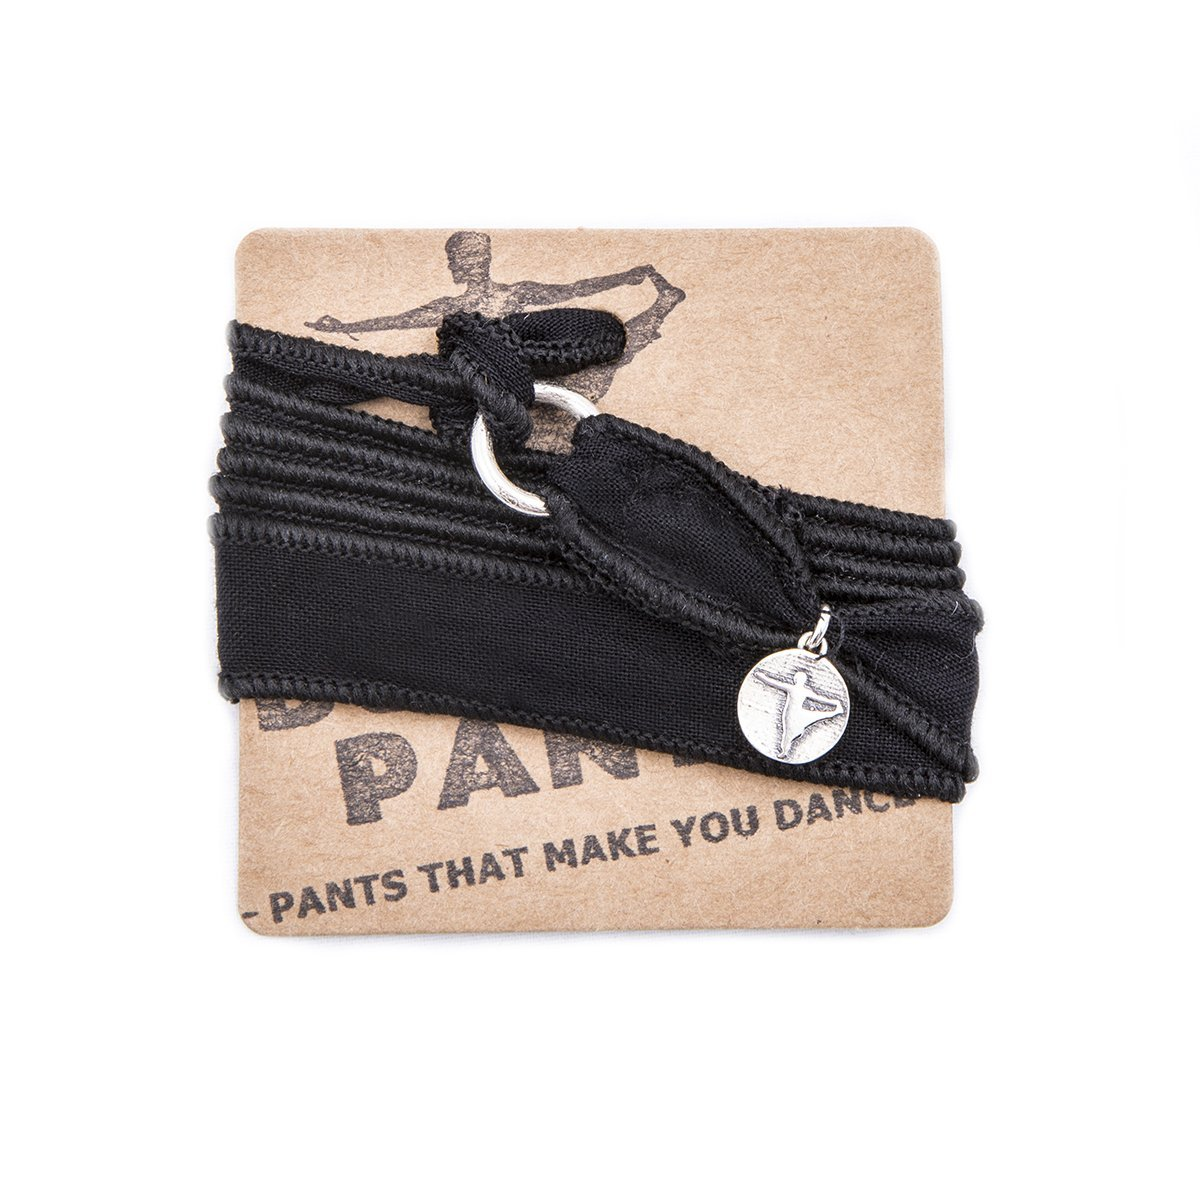 Black Wrap Bracelets (3 PACK) by Buddha Pants® - Buddha Pants®